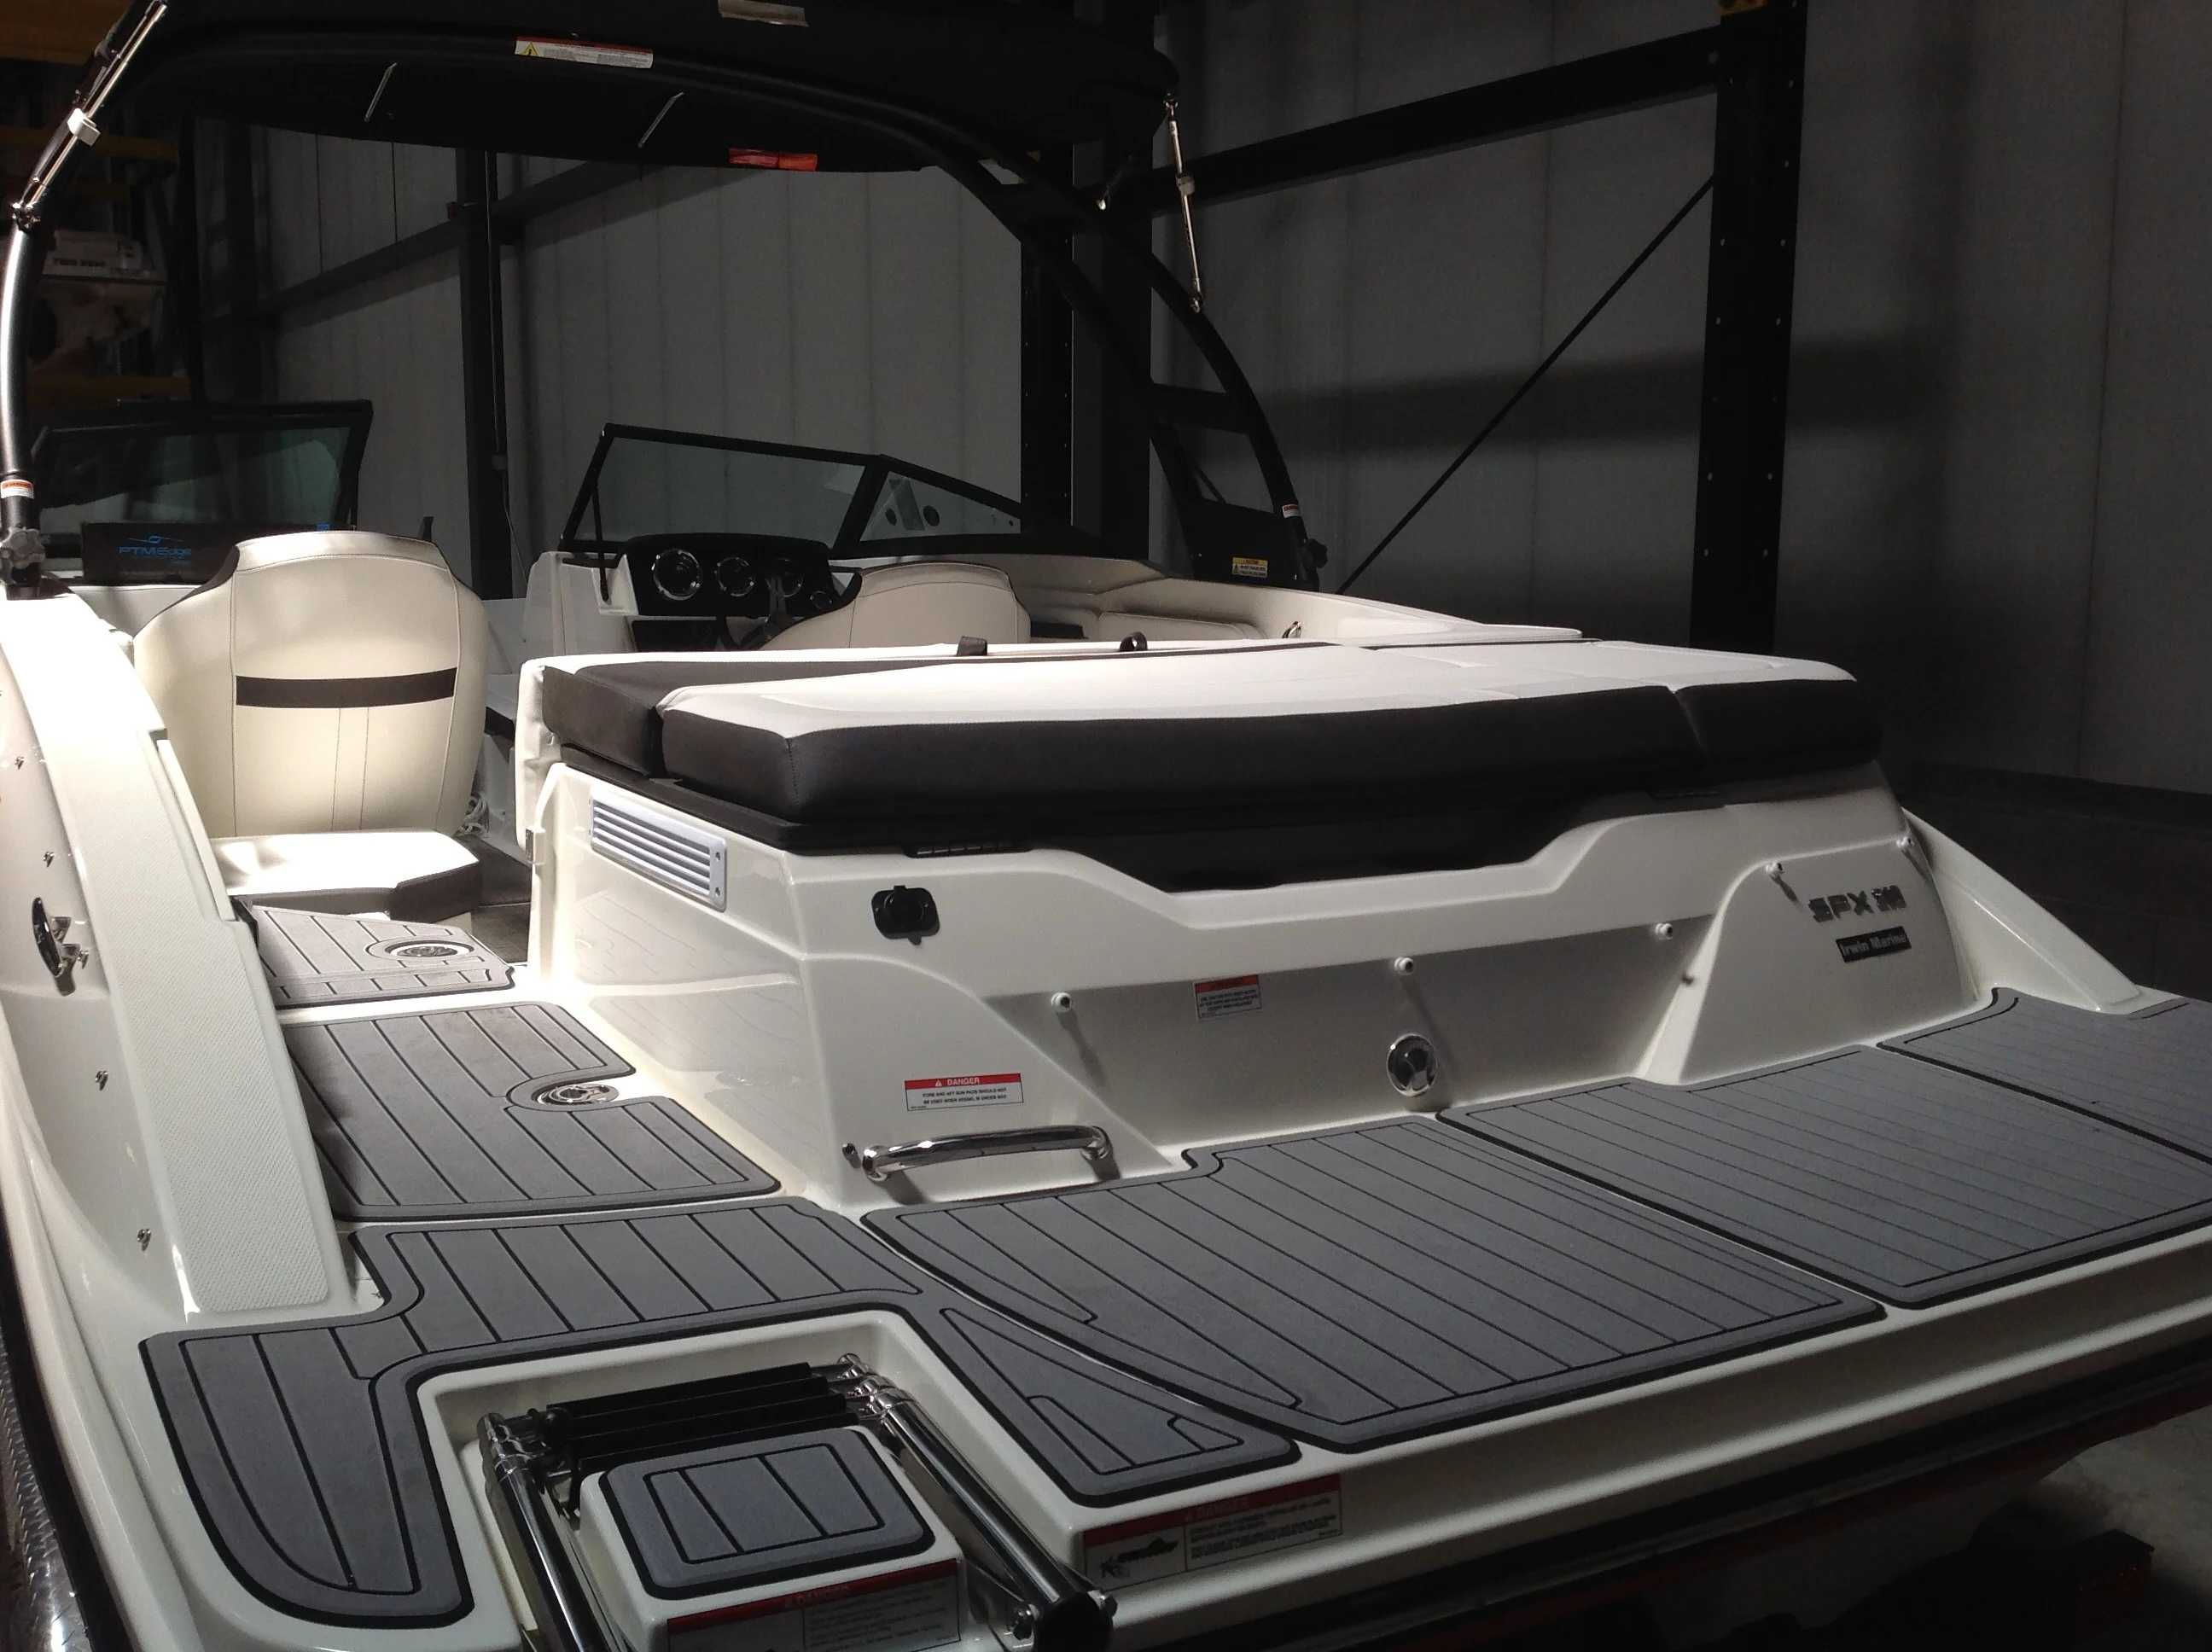 2021 Sea Ray boat for sale, model of the boat is 210 SPX & Image # 12 of 12